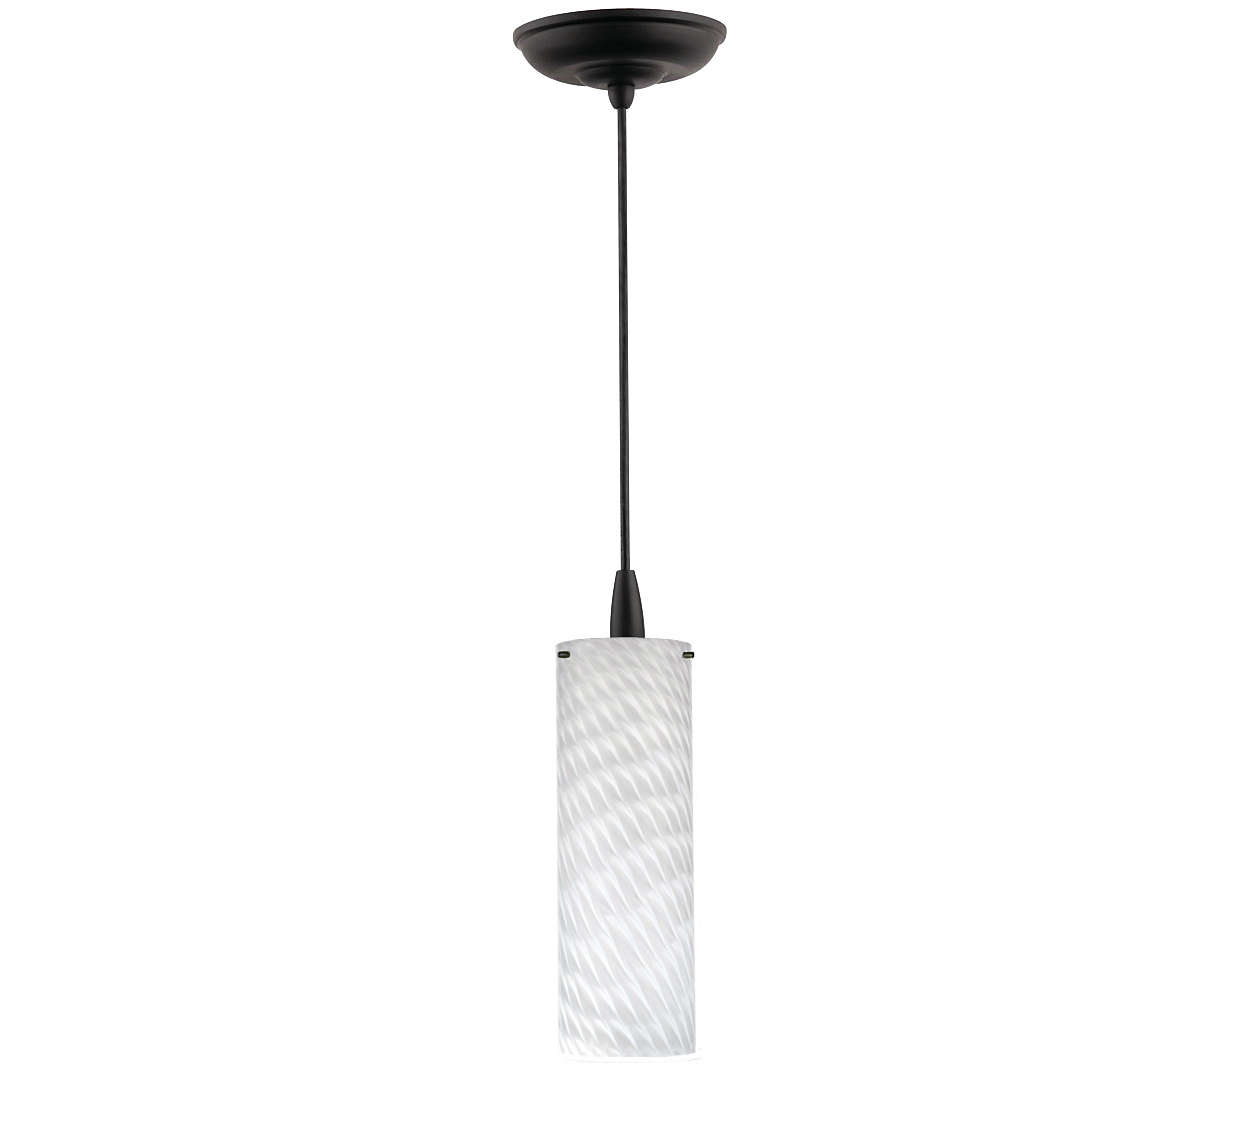 Marta 1-light pendant in Black finish